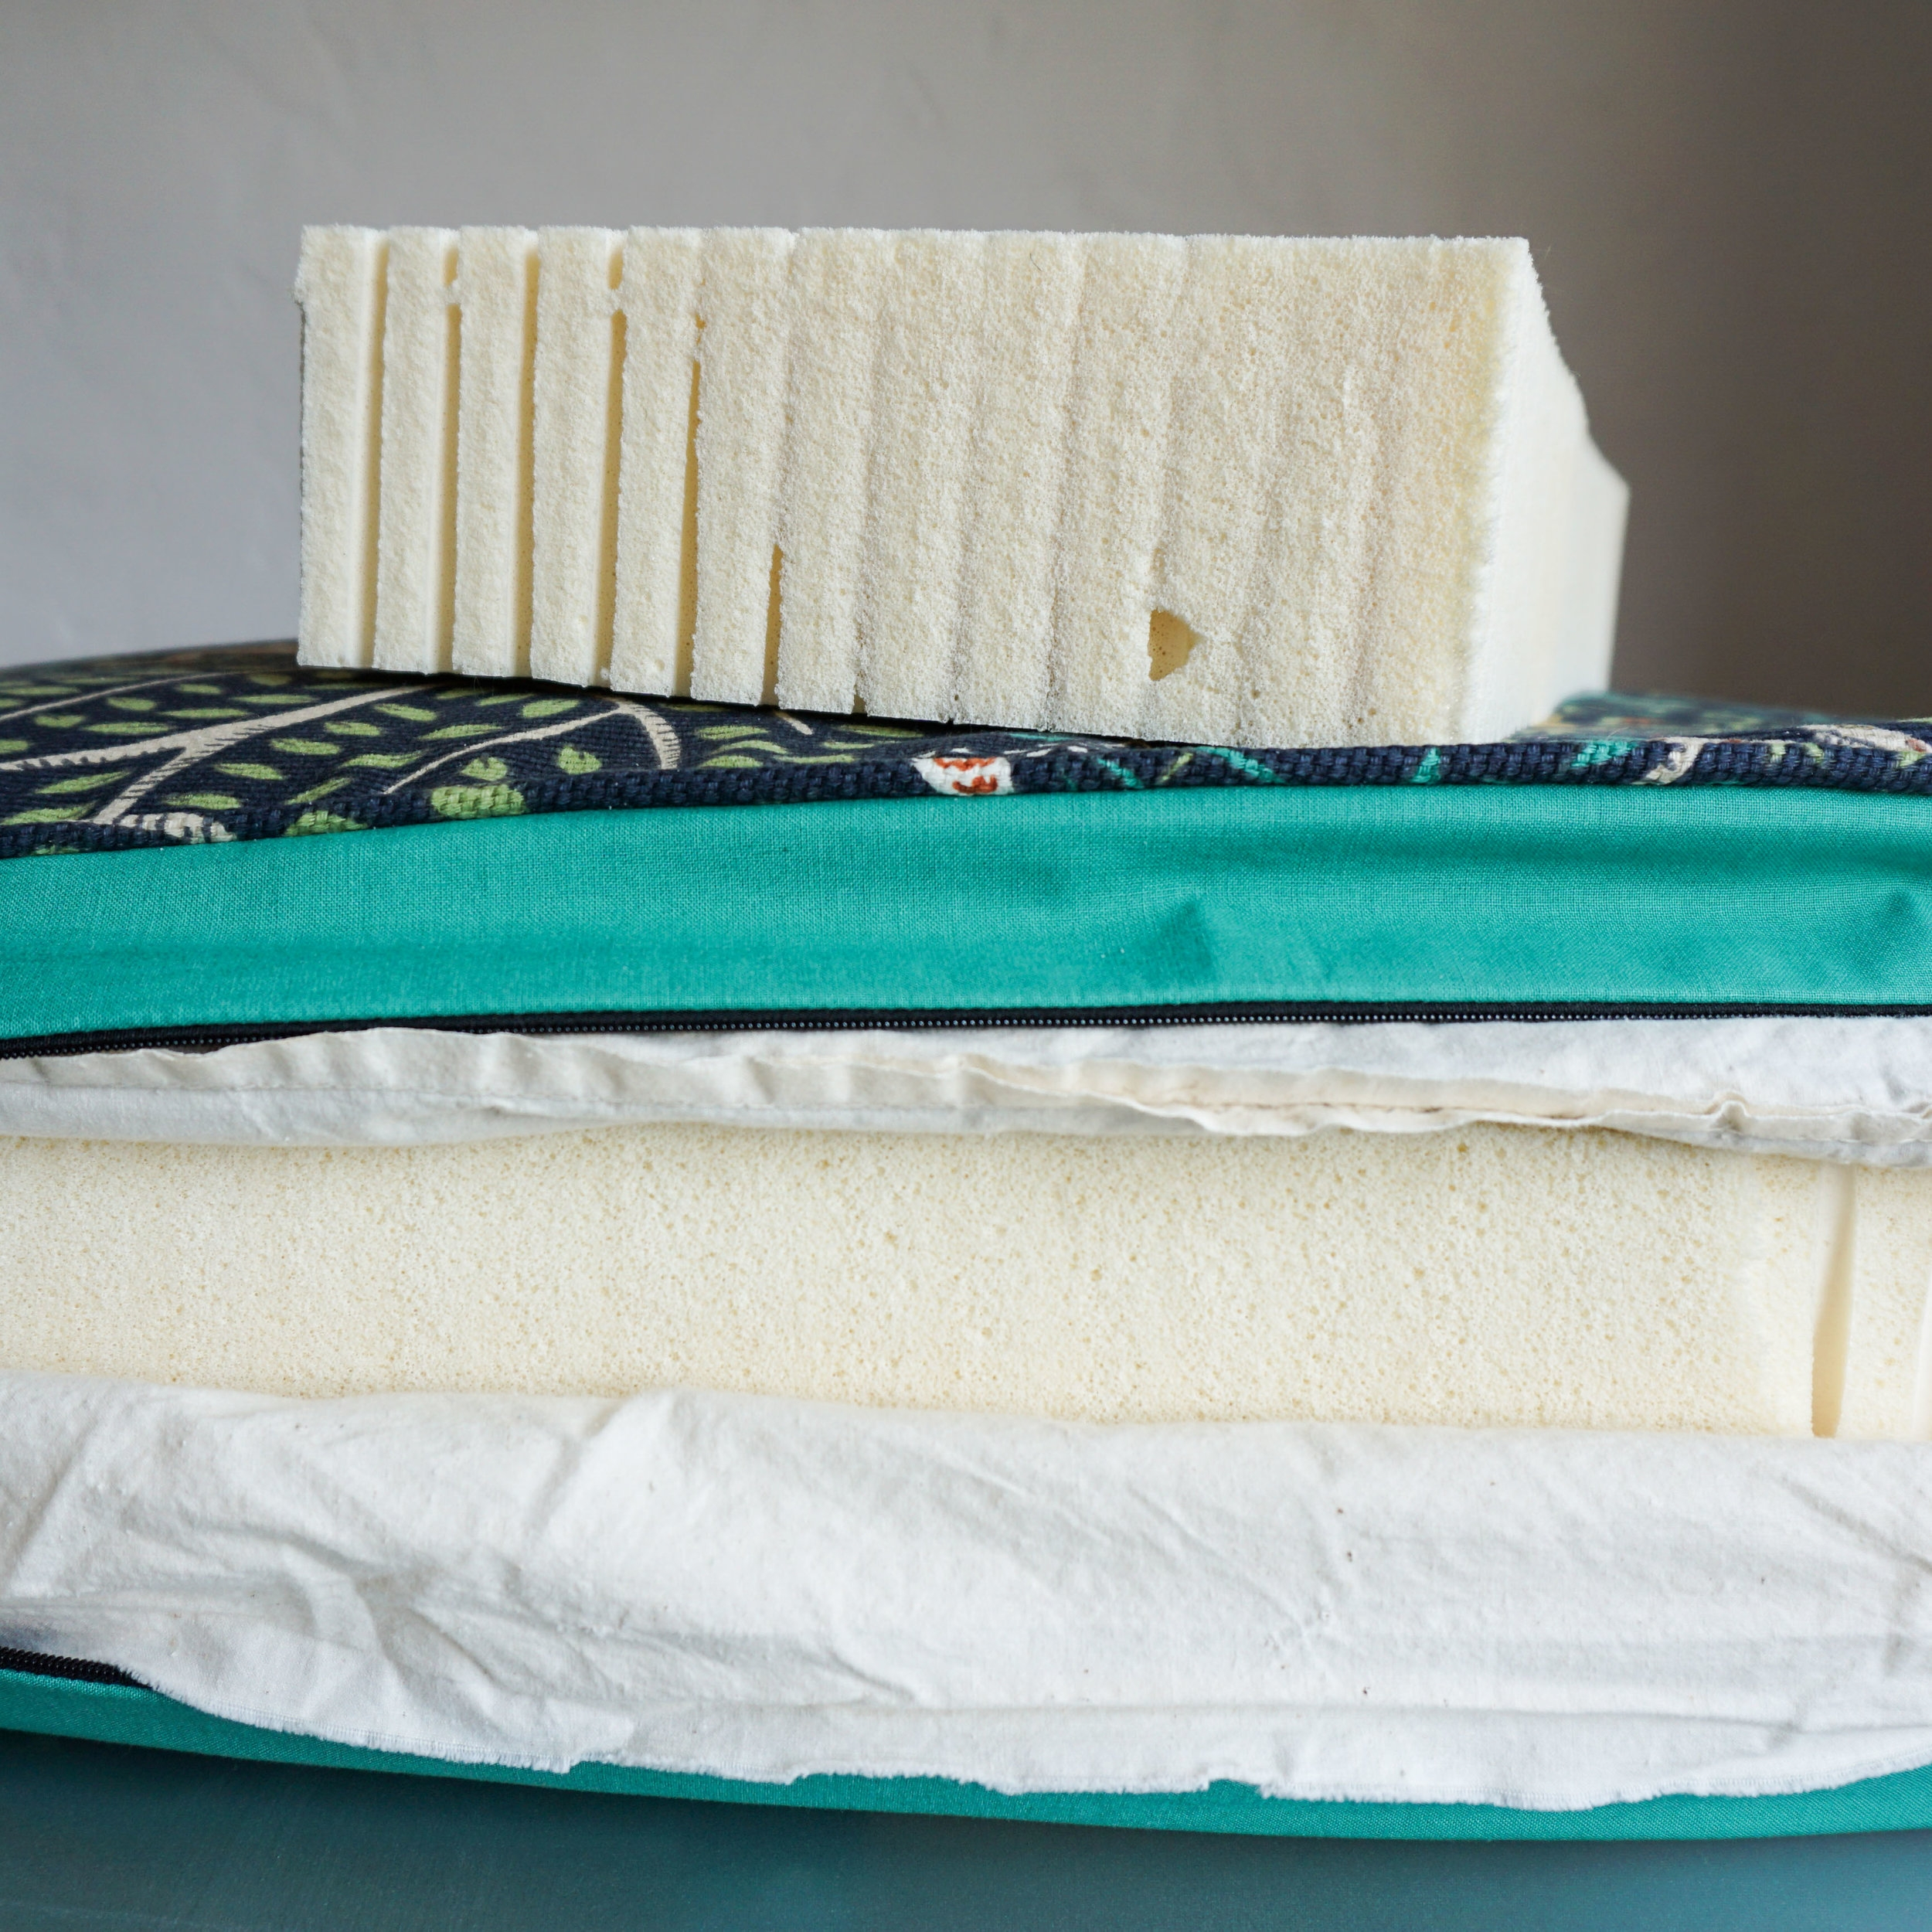 Natural Rubber Latex Foam vs. Conventional Foam - The real difference beyond the cushion.